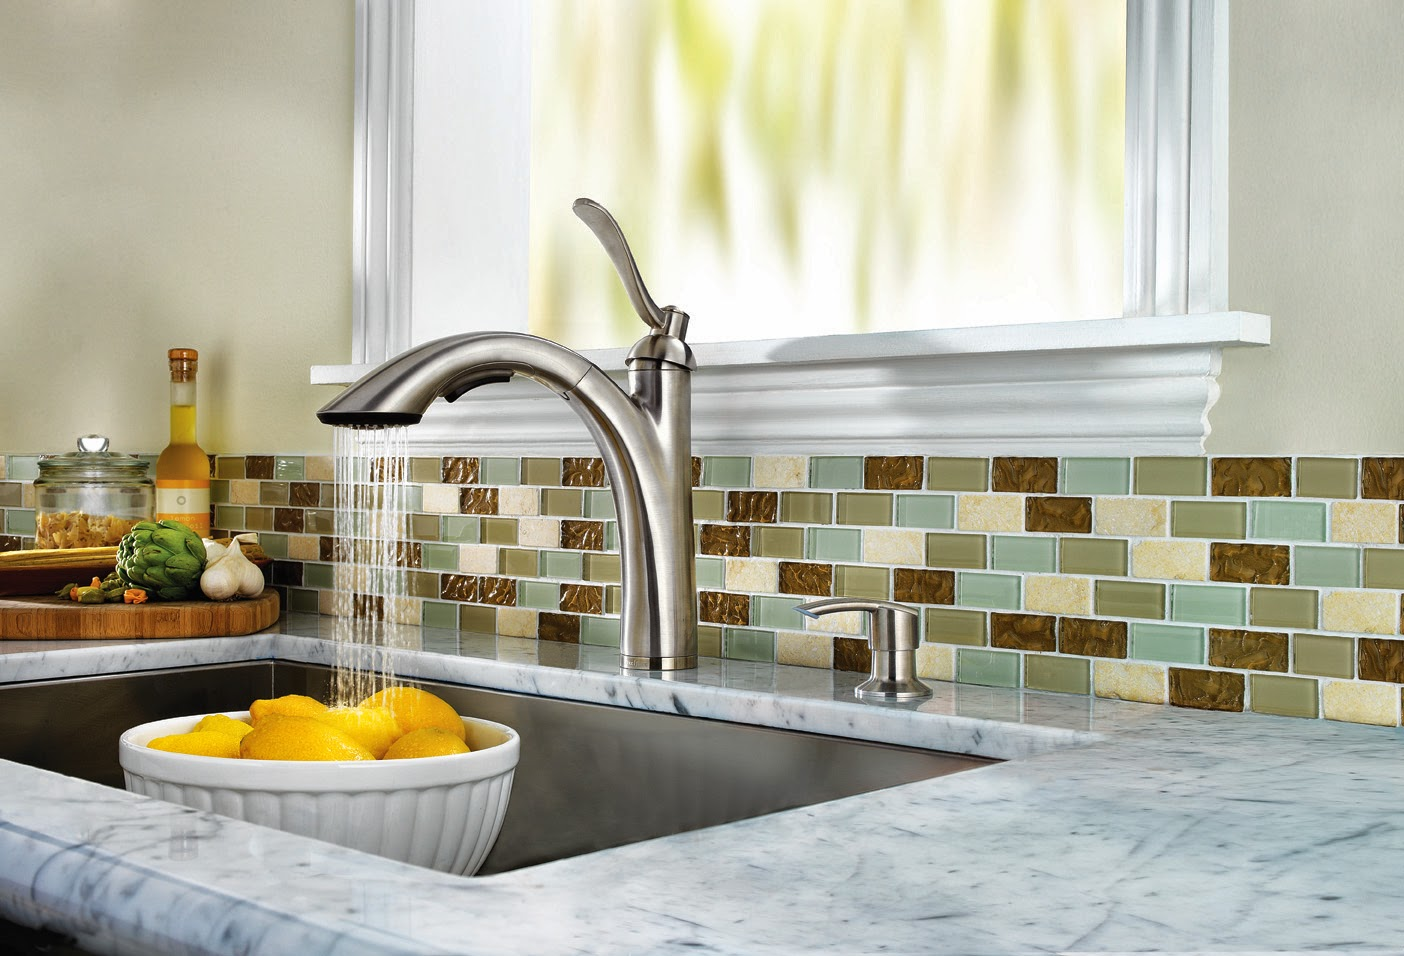 The Many Options of Kitchen Sink Faucets